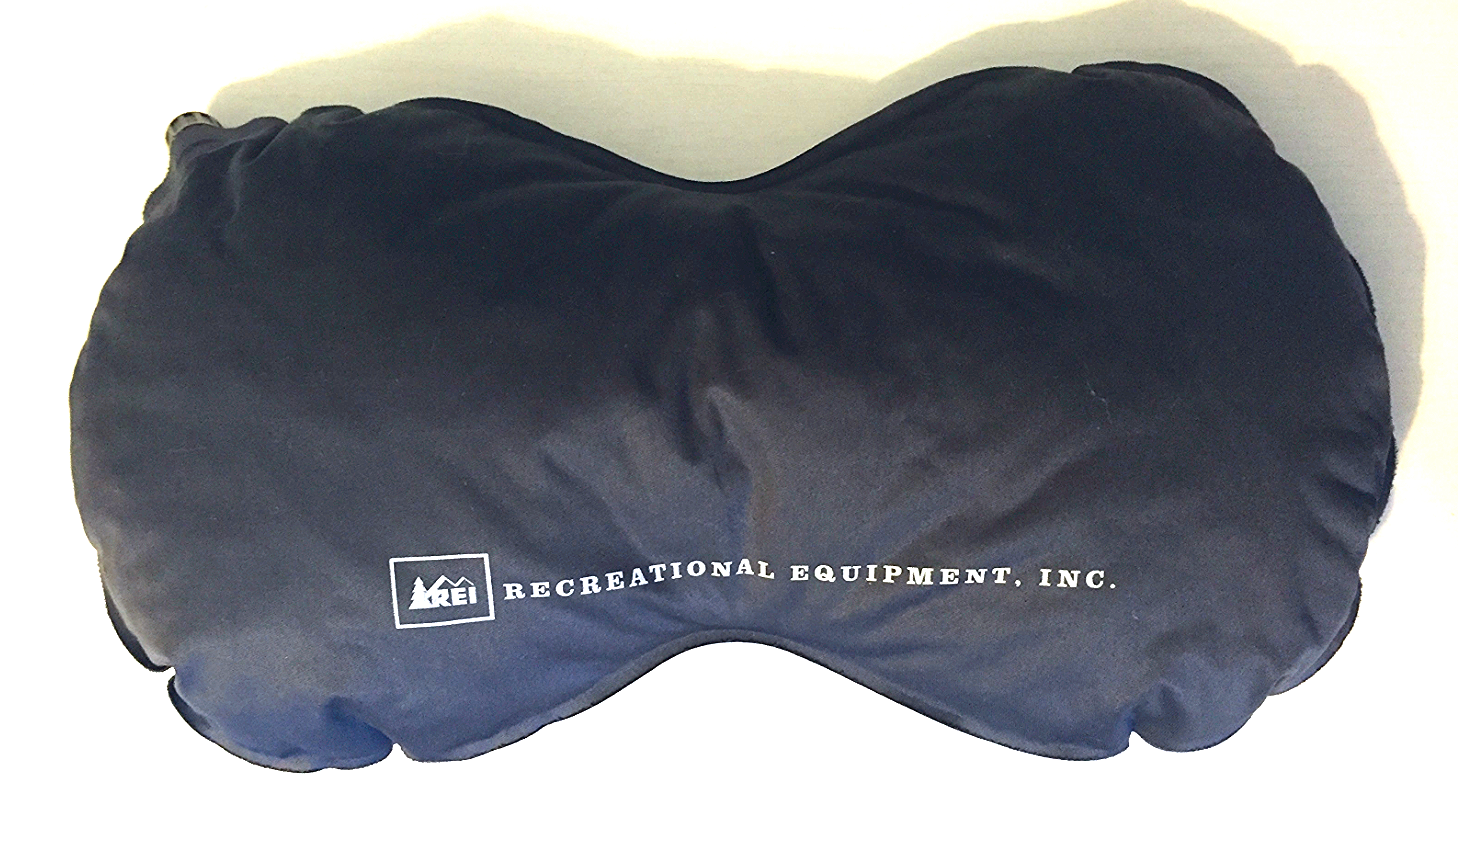 REI Self-Inflating Travel Pillow